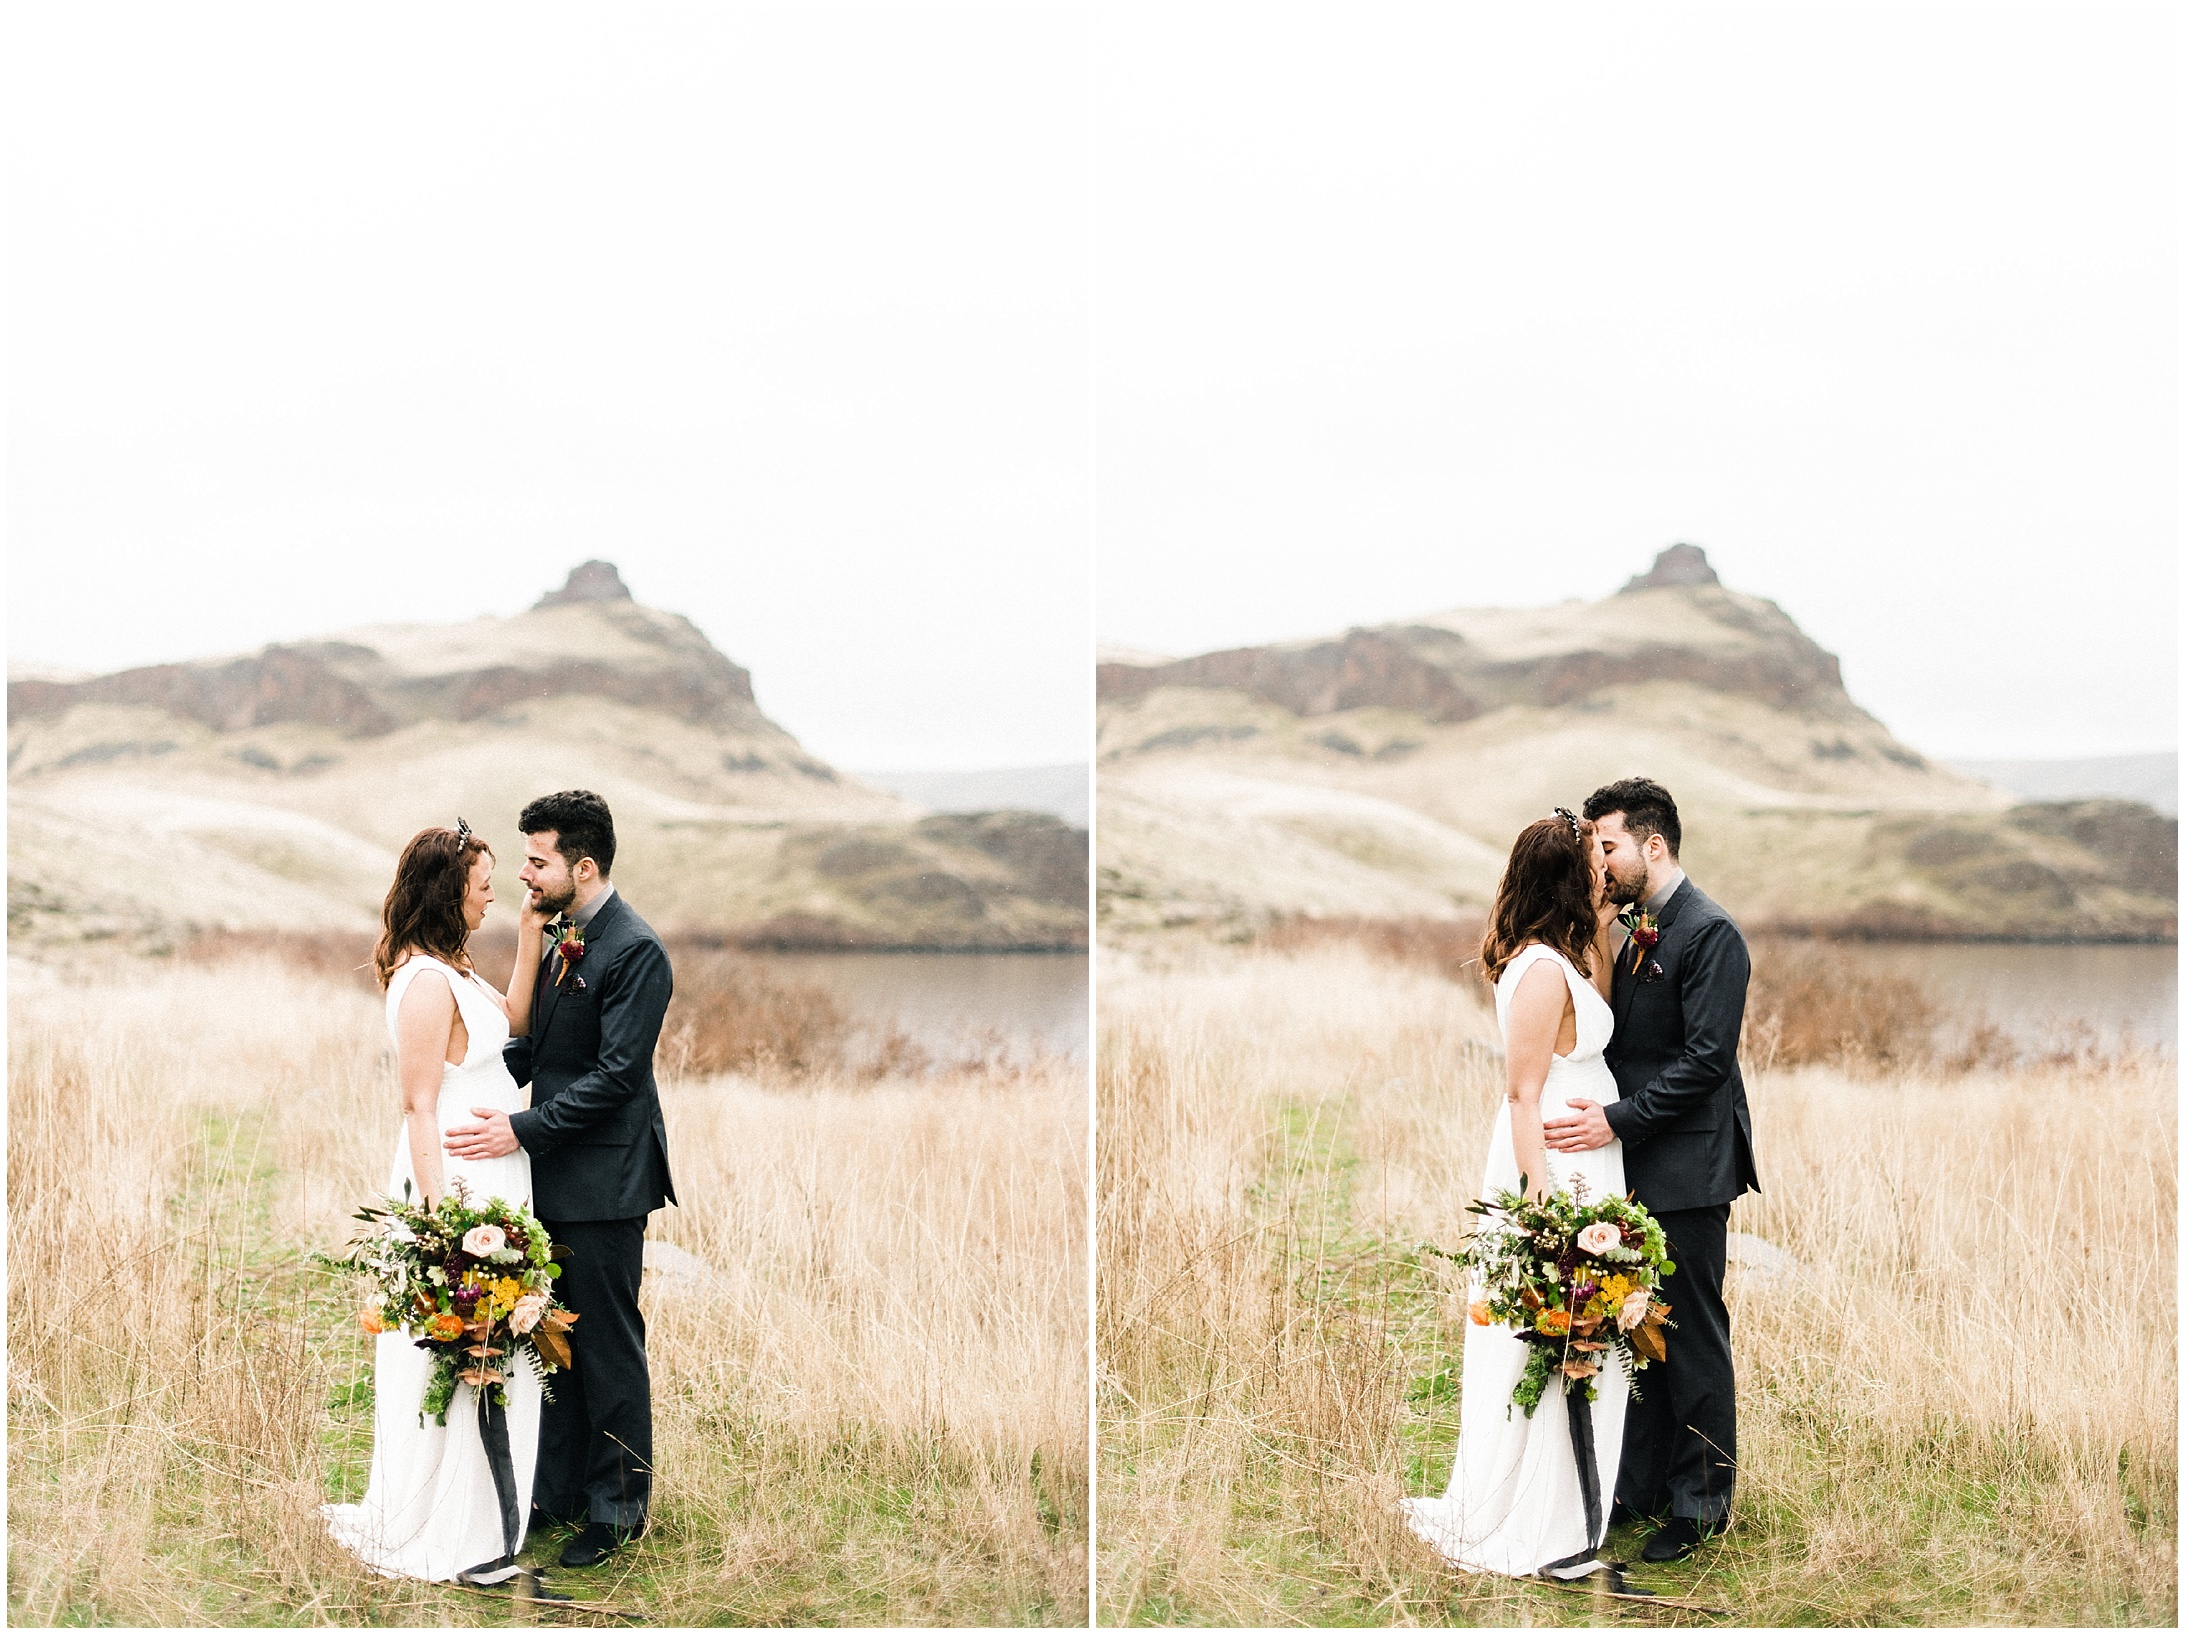 Diptych of a bride and groom in a styled elopement shoot in Lyons Ferry State Park by Forthright Photo